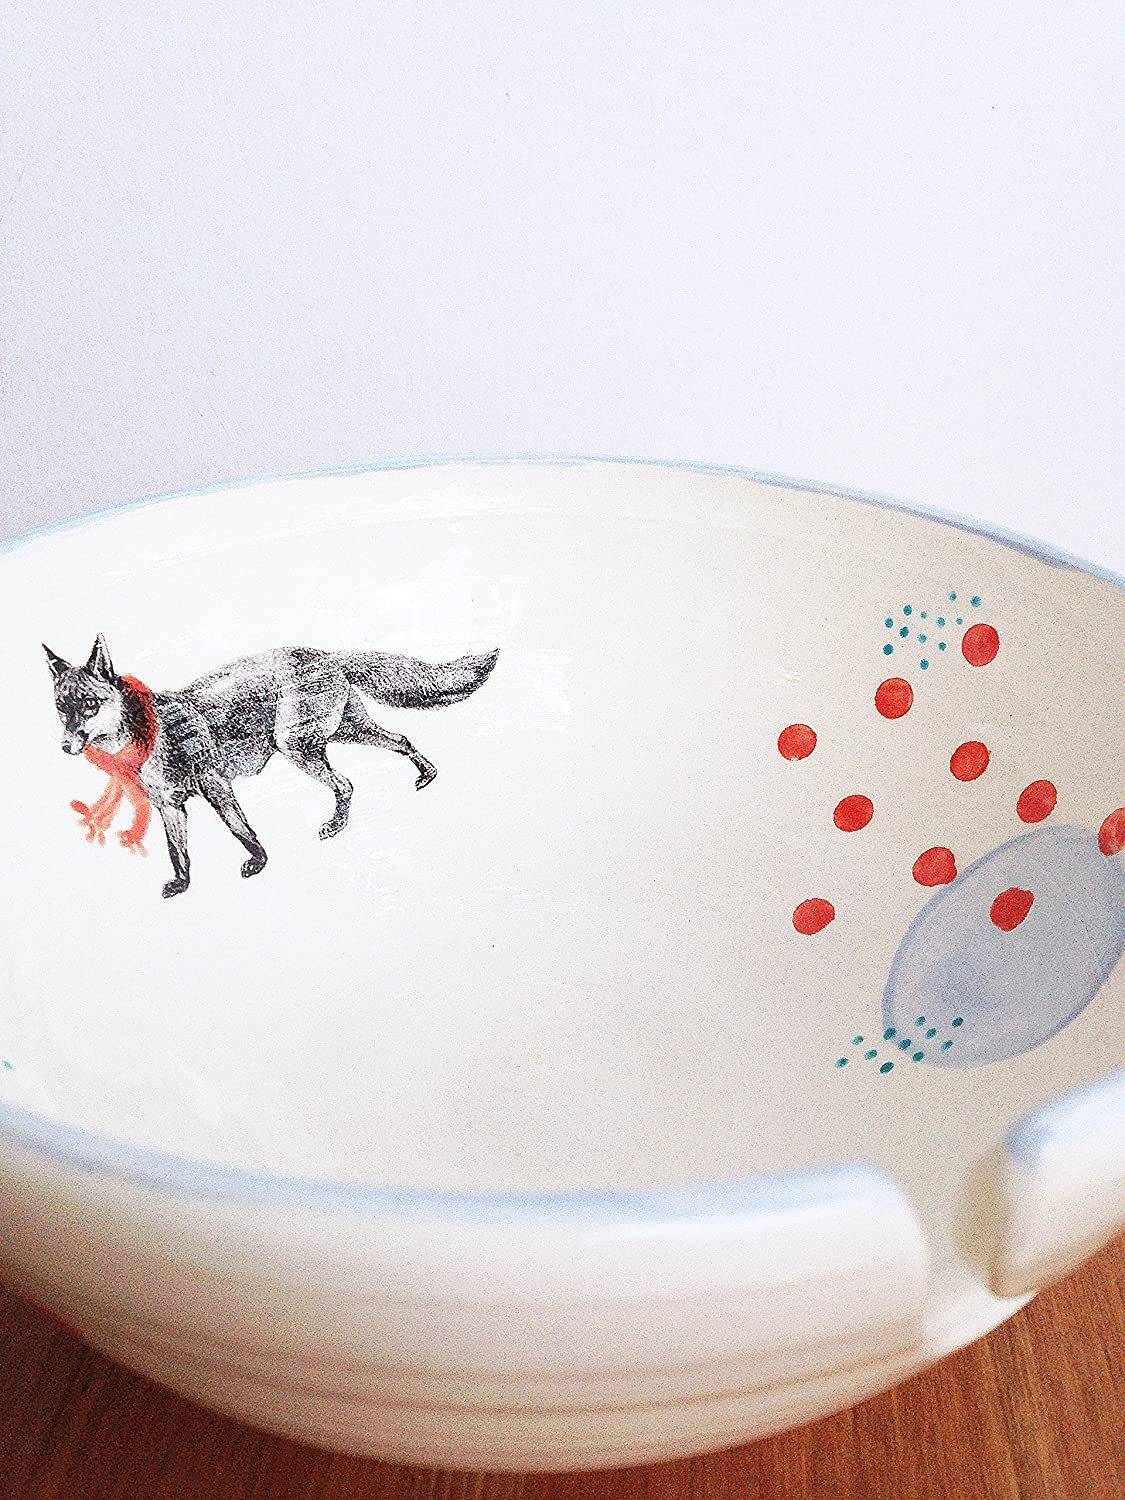 Modern Yarn Bowl Excellence with Outstanding Fox Pottery and Polka Dots